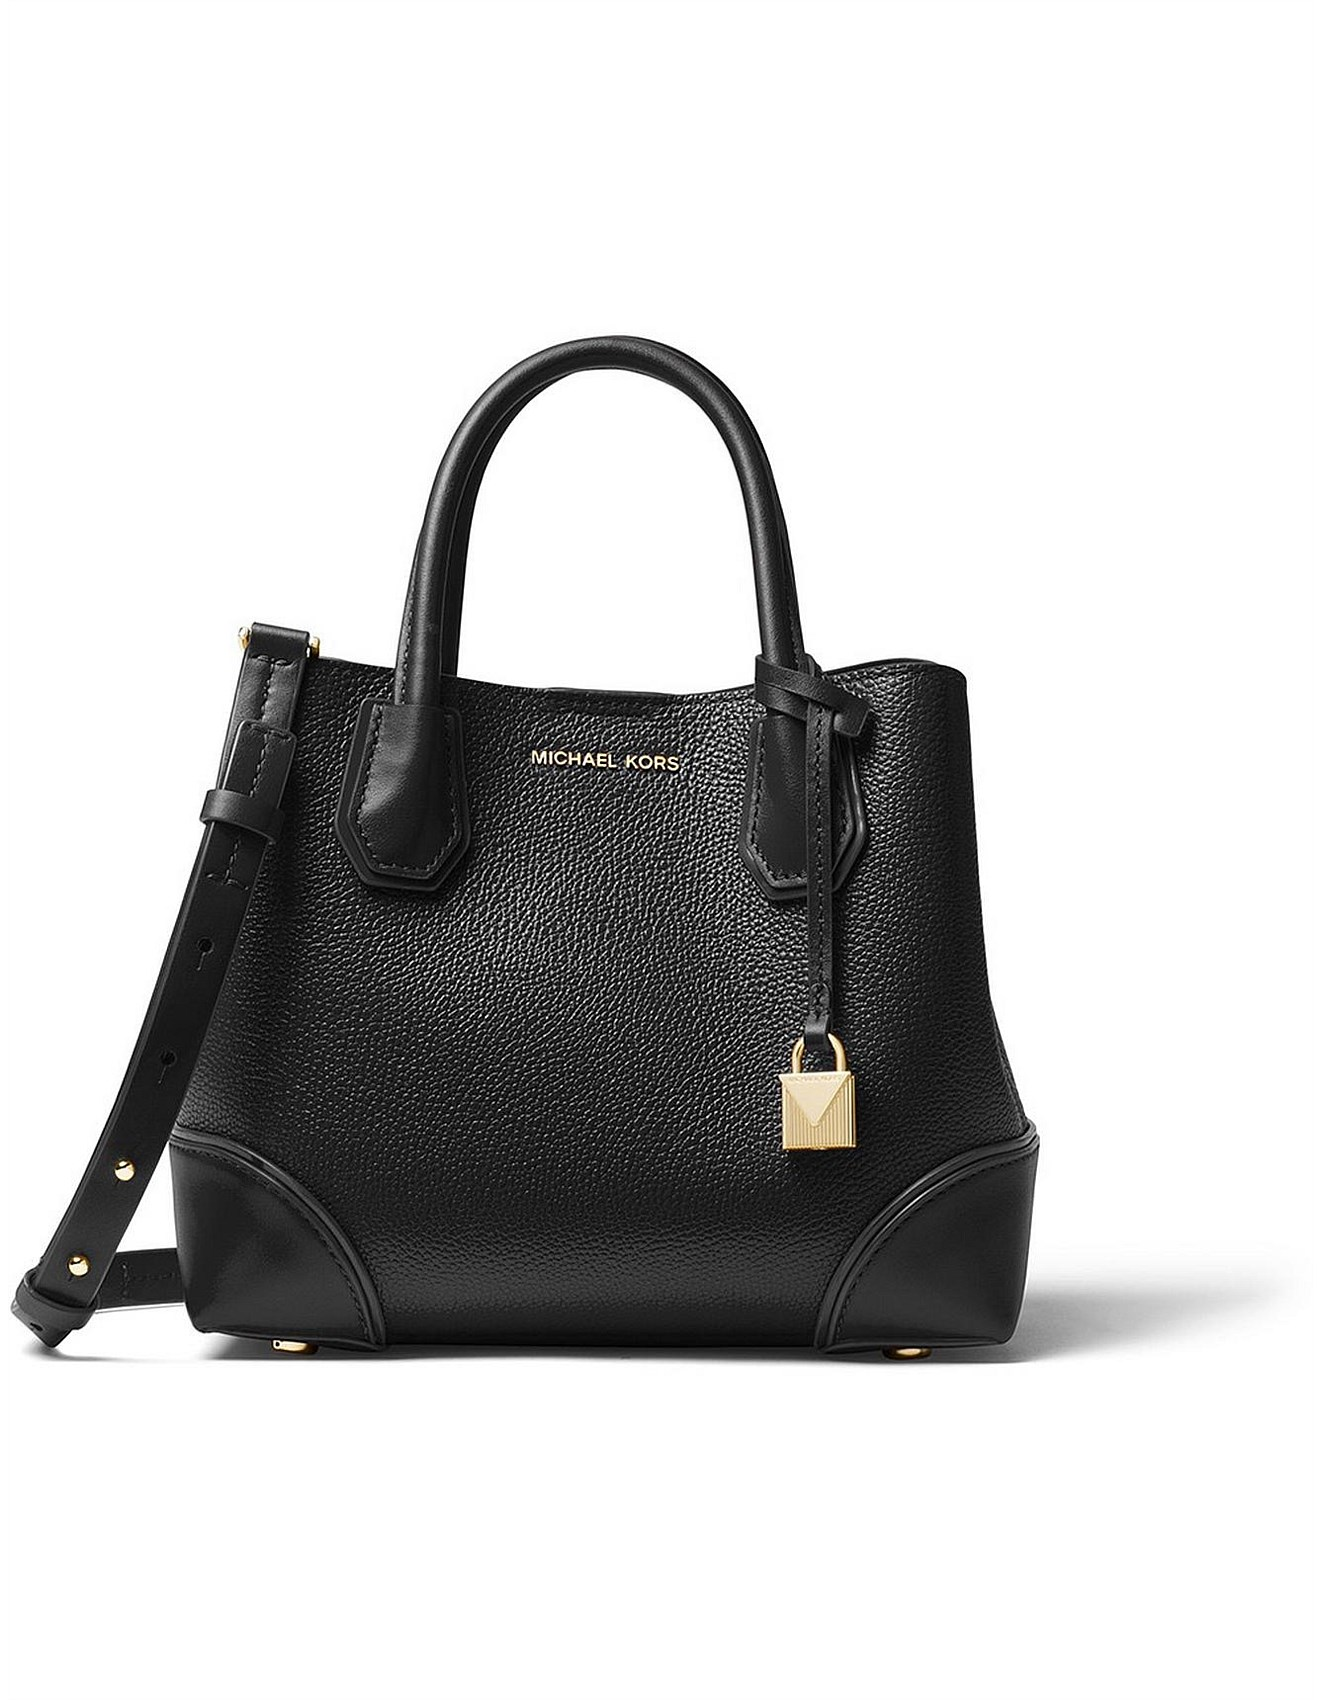 bags mercer gallery small pebbled leather satchel. Black Bedroom Furniture Sets. Home Design Ideas